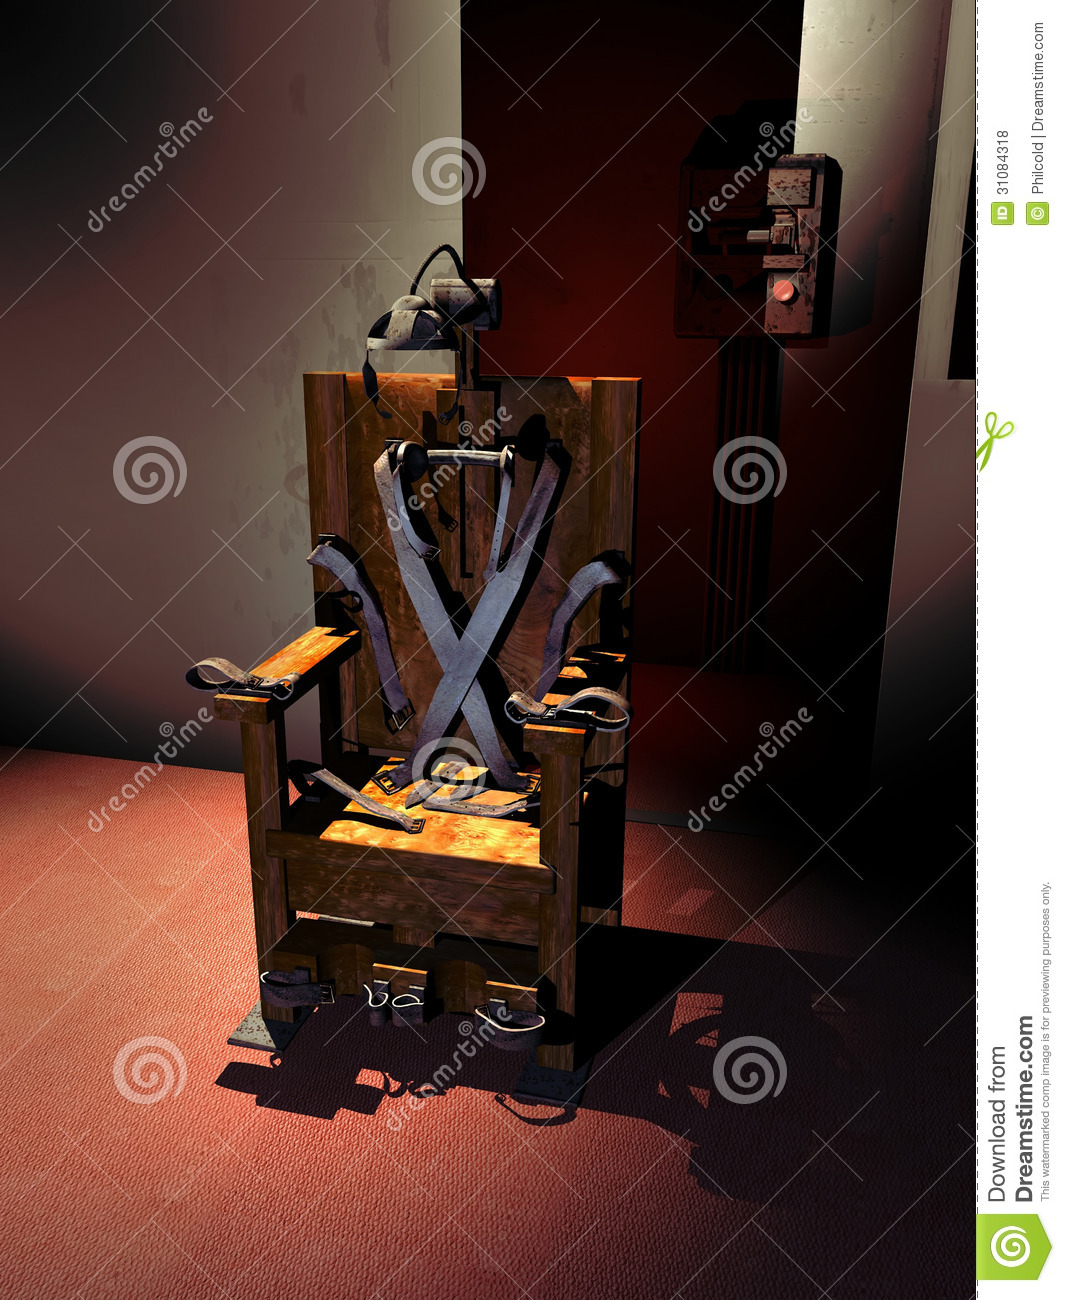 Electric chair stock illustration image of wooden power for Chaise electrique